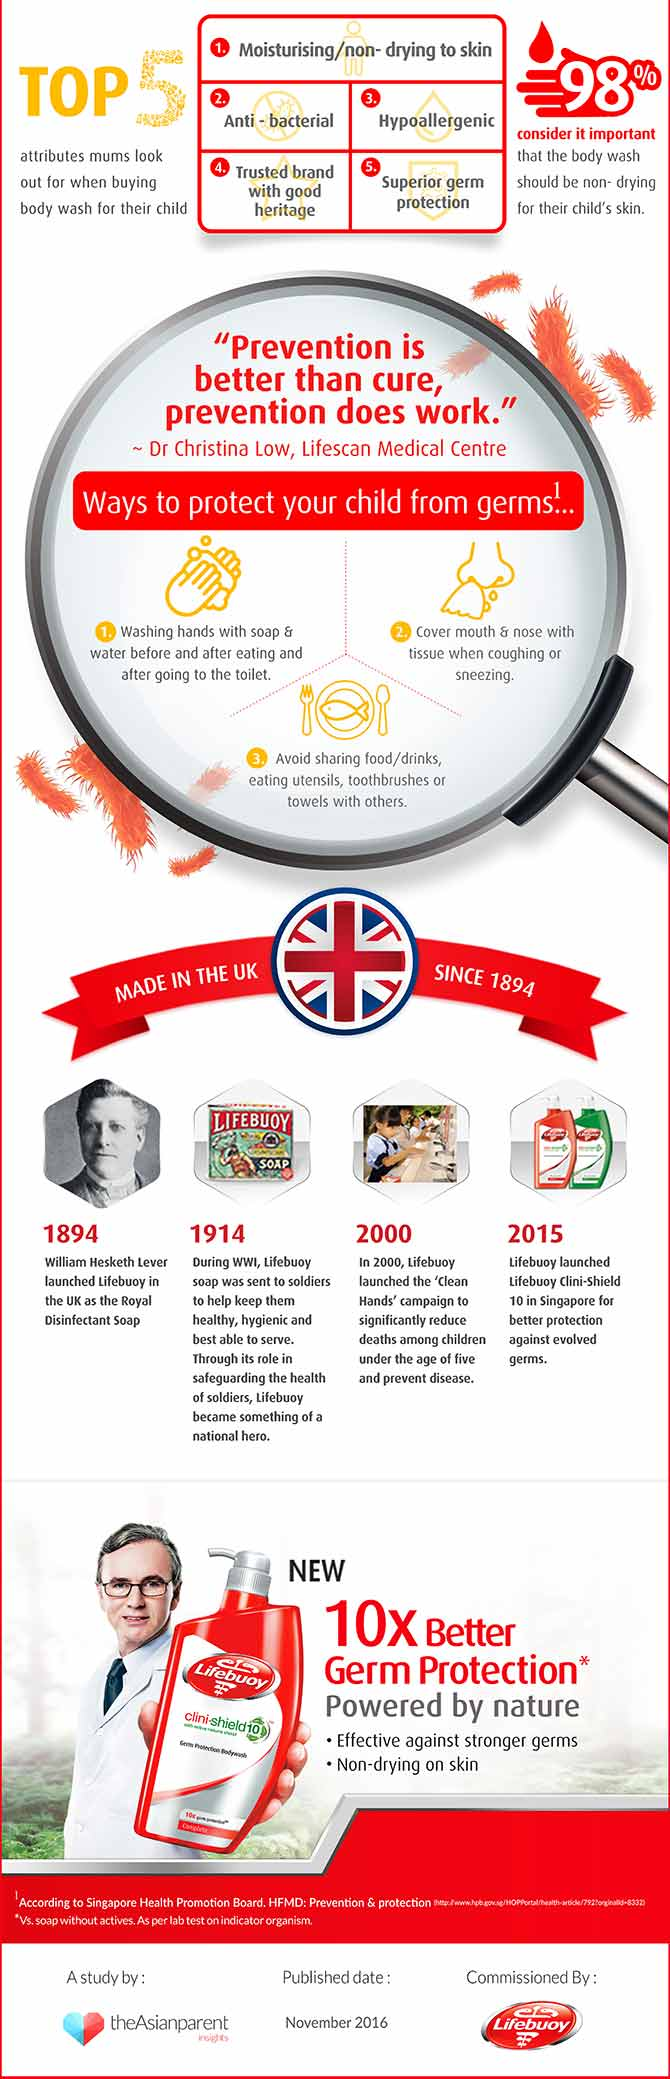 lifebuoy_infographic-2part_02